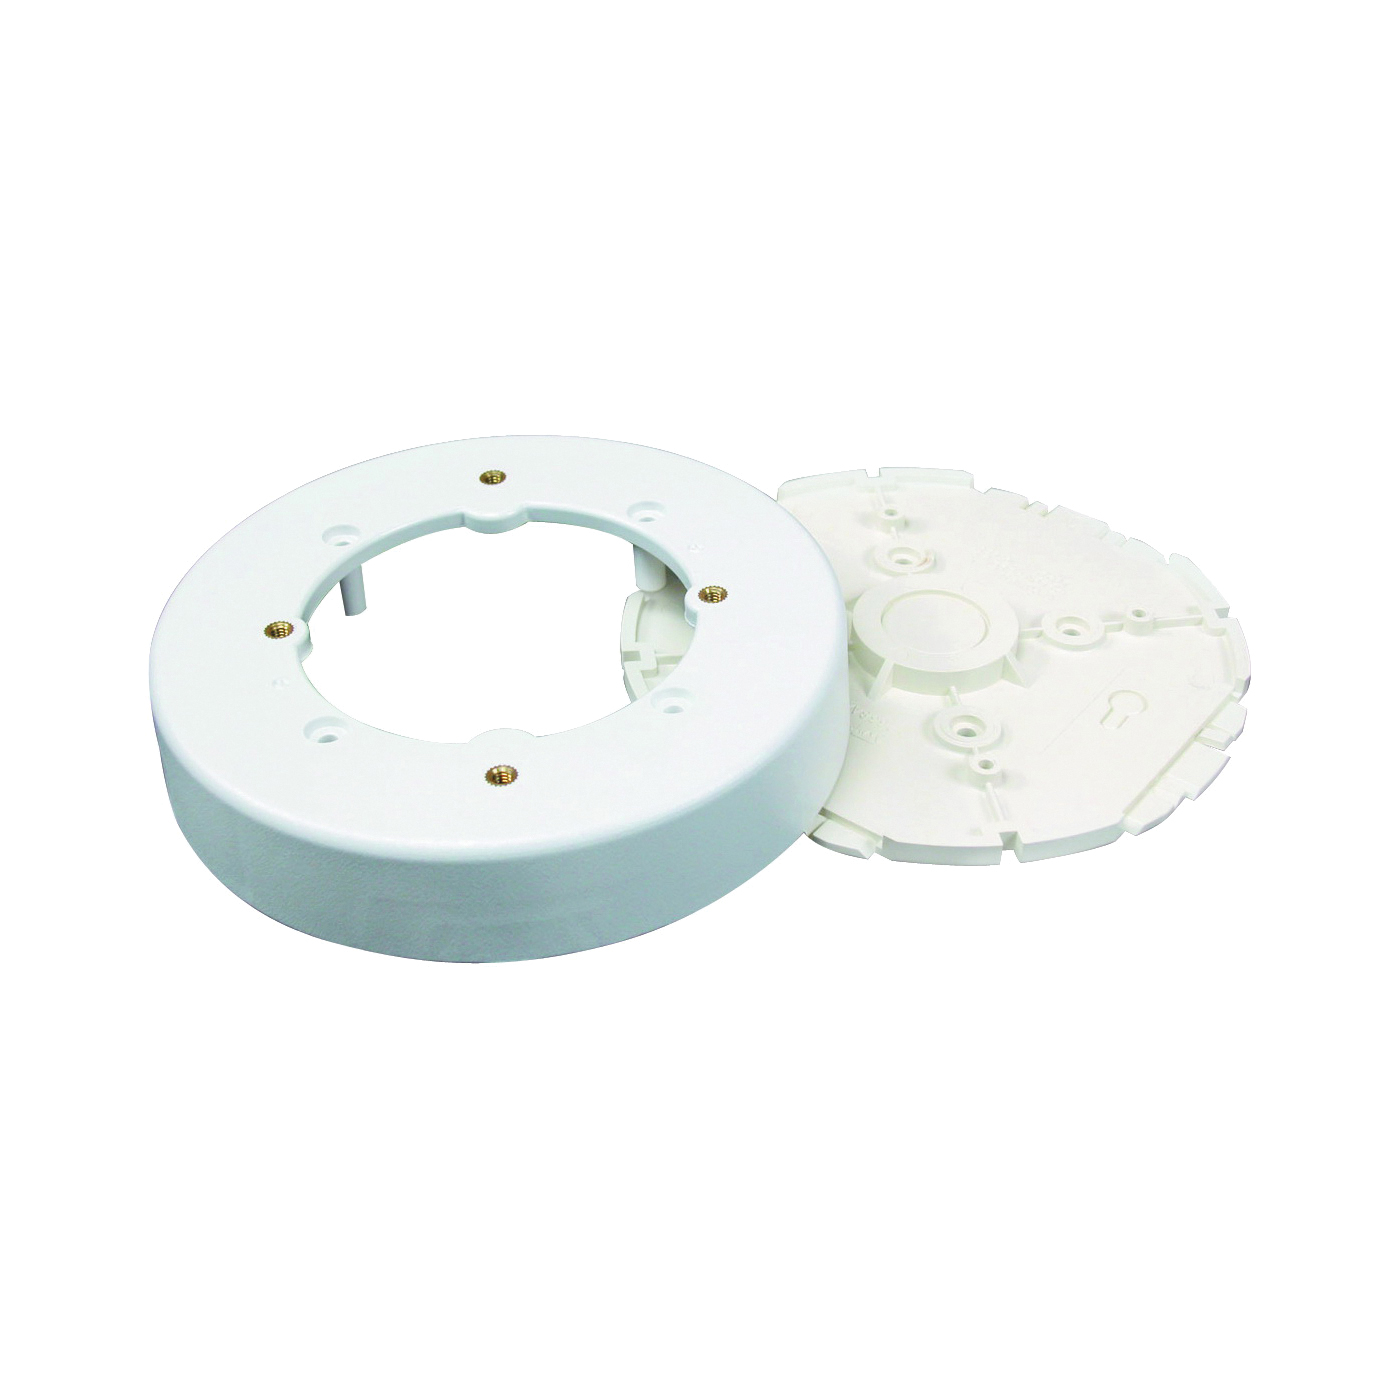 Picture of Legrand Wiremold NMW Series NMW4 Fixture Box, 4 in D, 1-Gang, Plastic, White